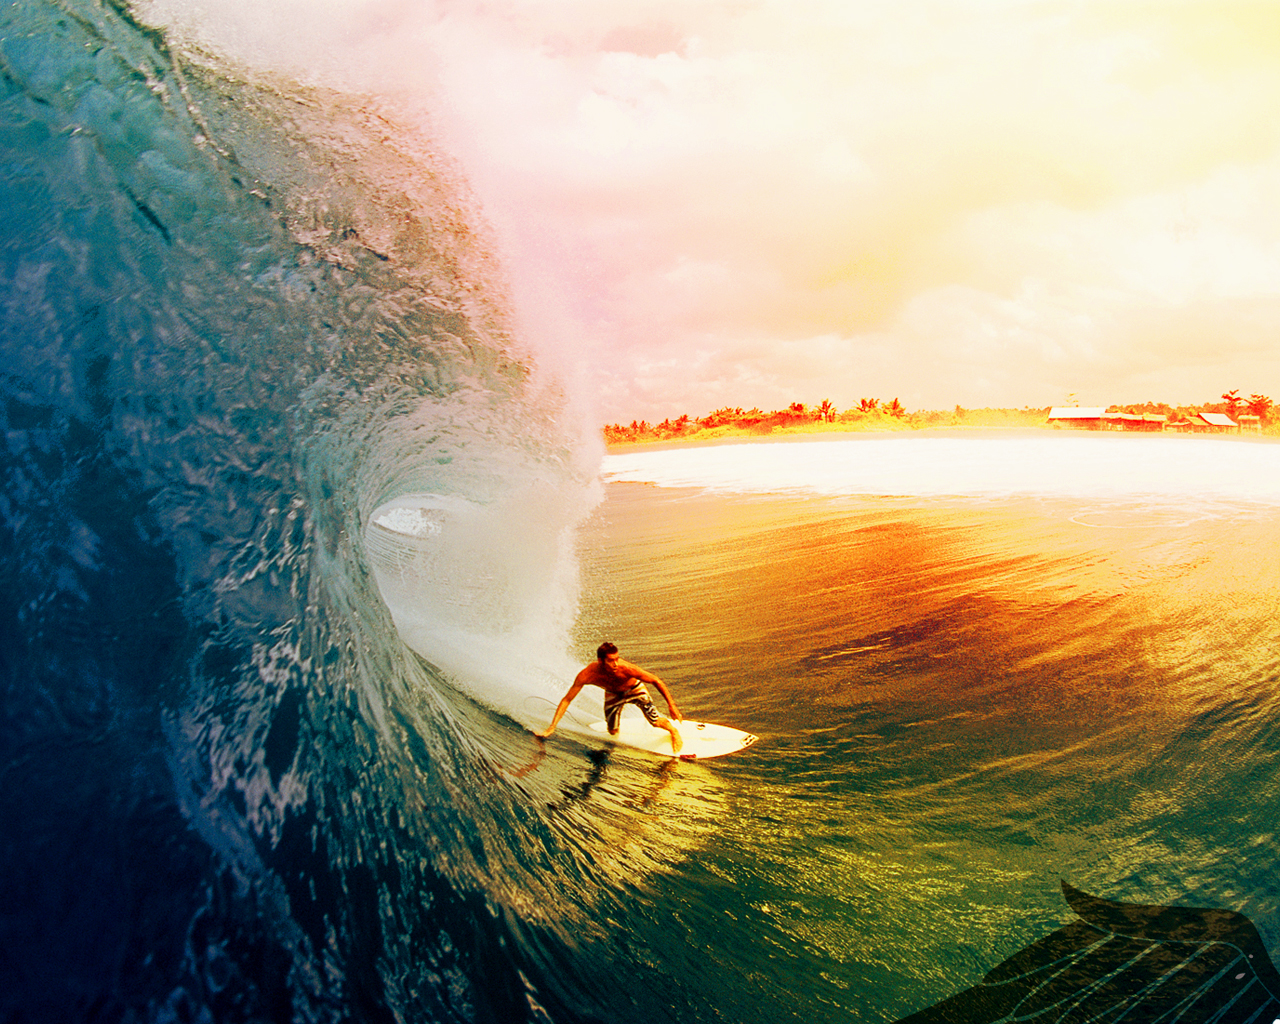 Top Girls Surfing Beautiful Sunset Wallpapers 1280x1024